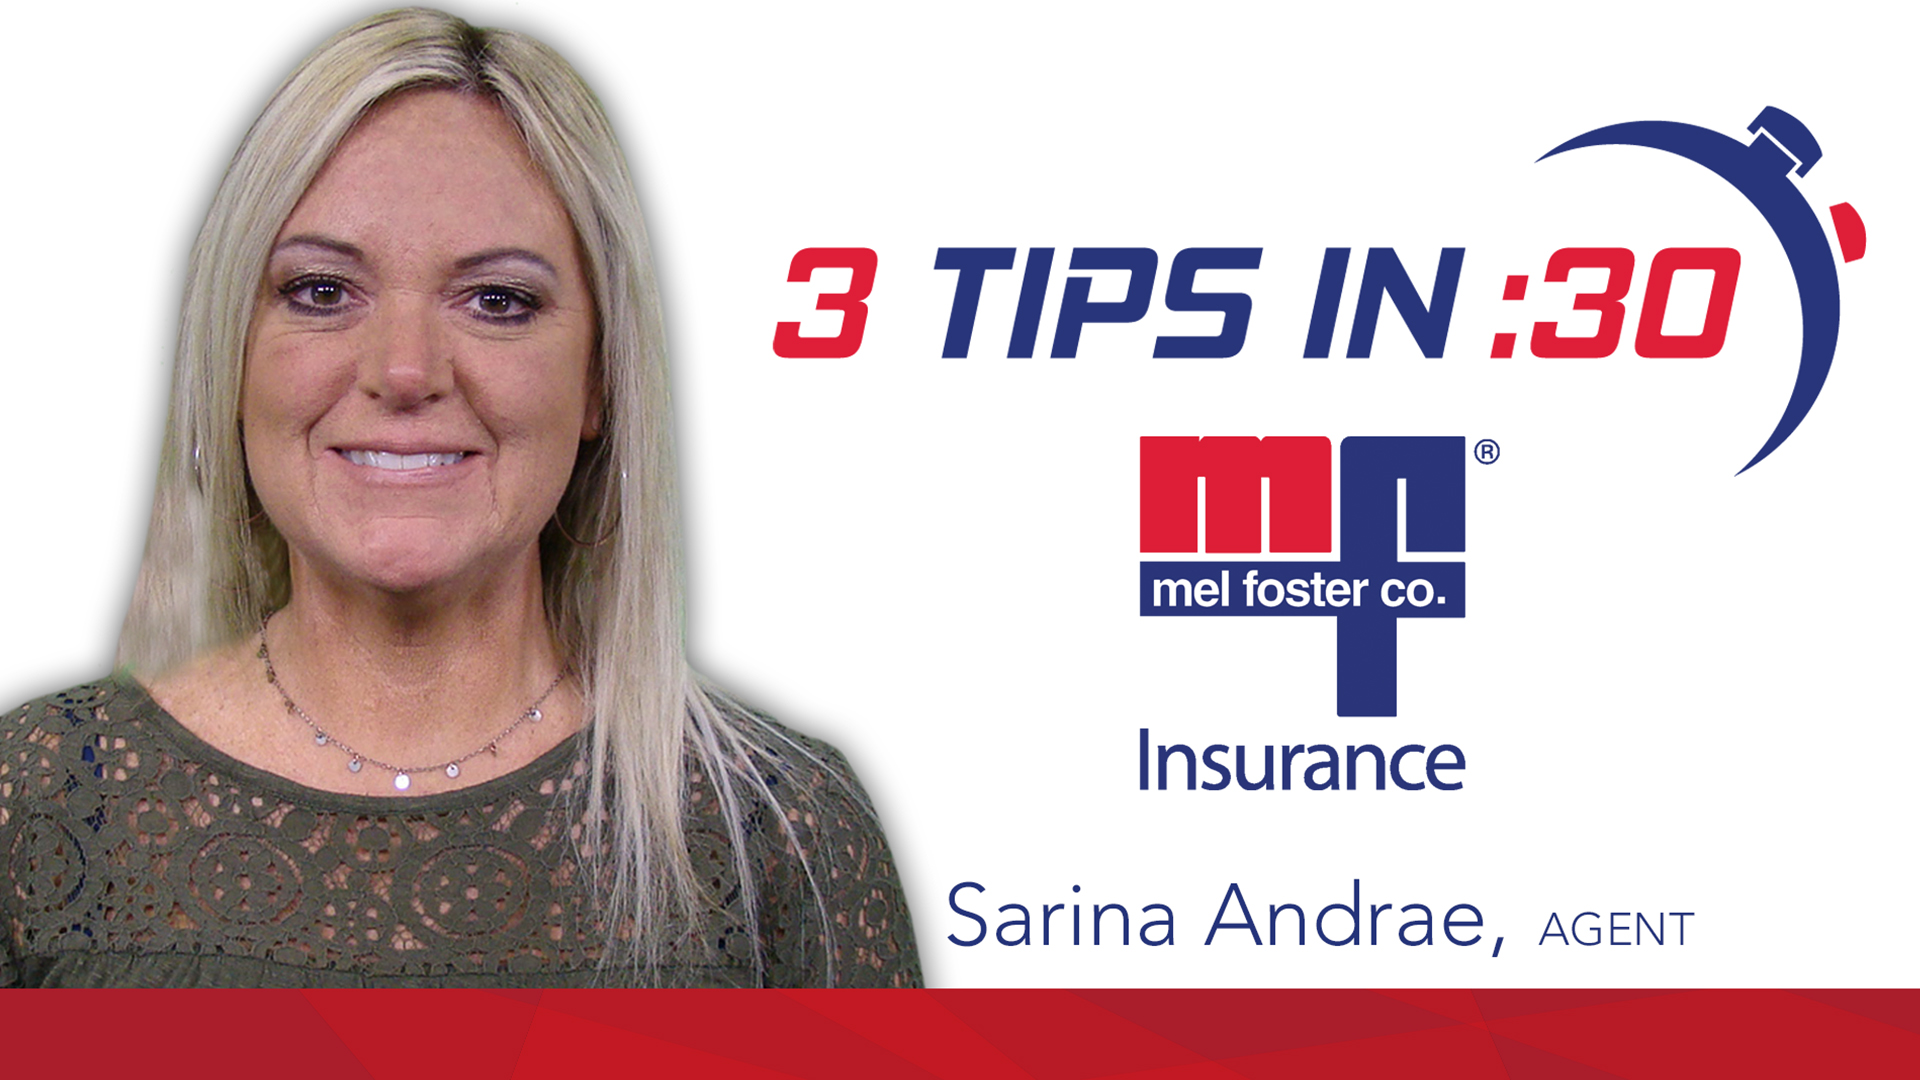 Insurance Coverage during transition of moving